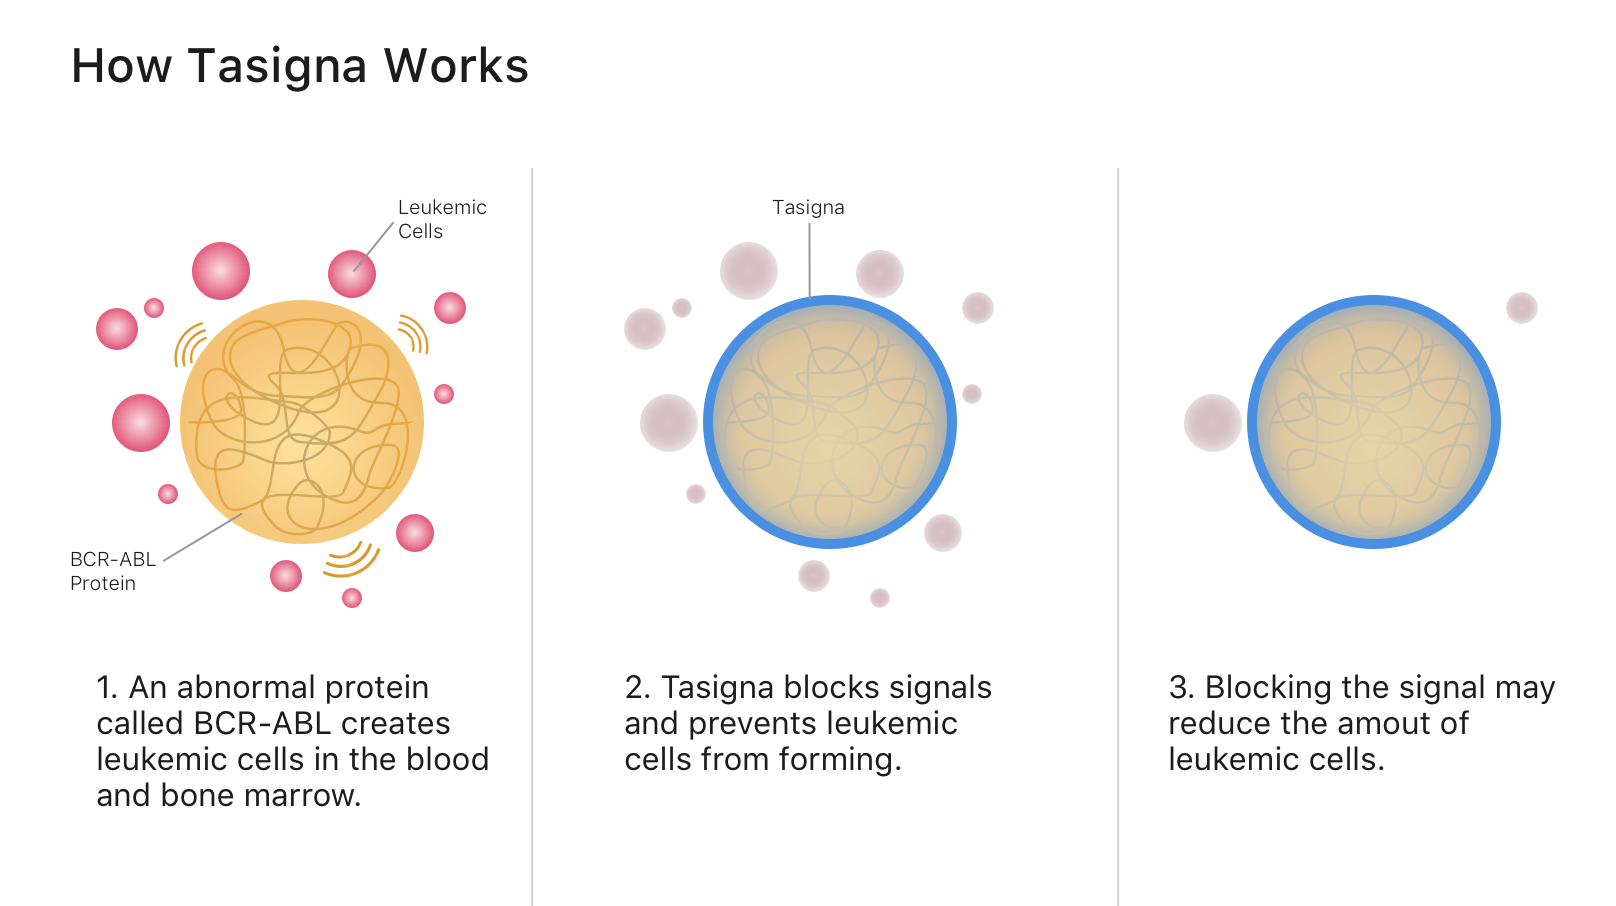 An infographic that illustrates how tasigna works.